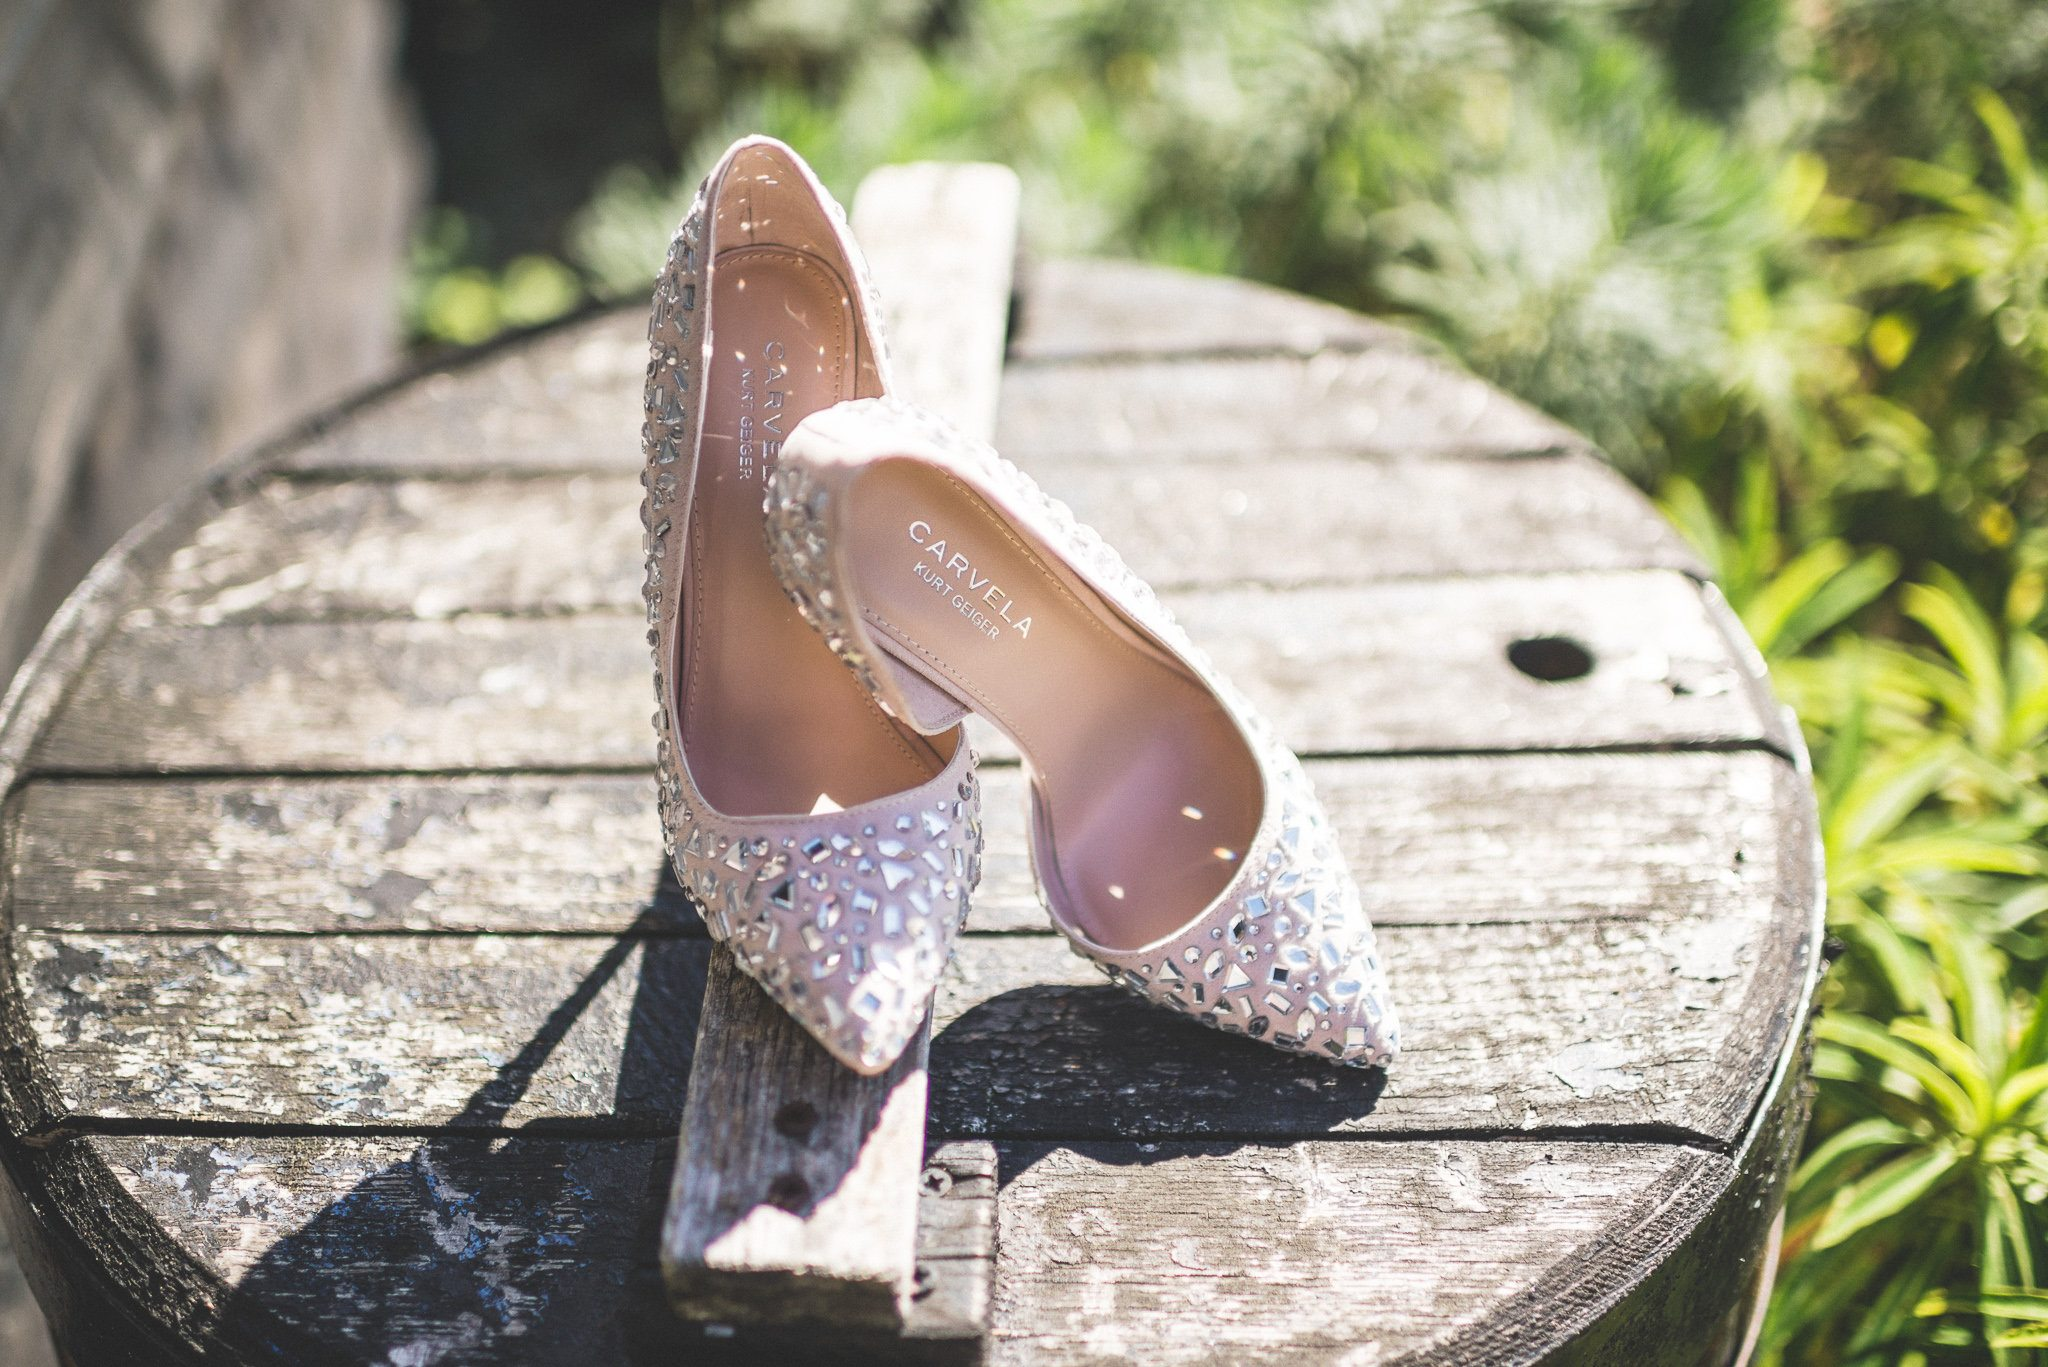 A pair of studded nude Carvela heels